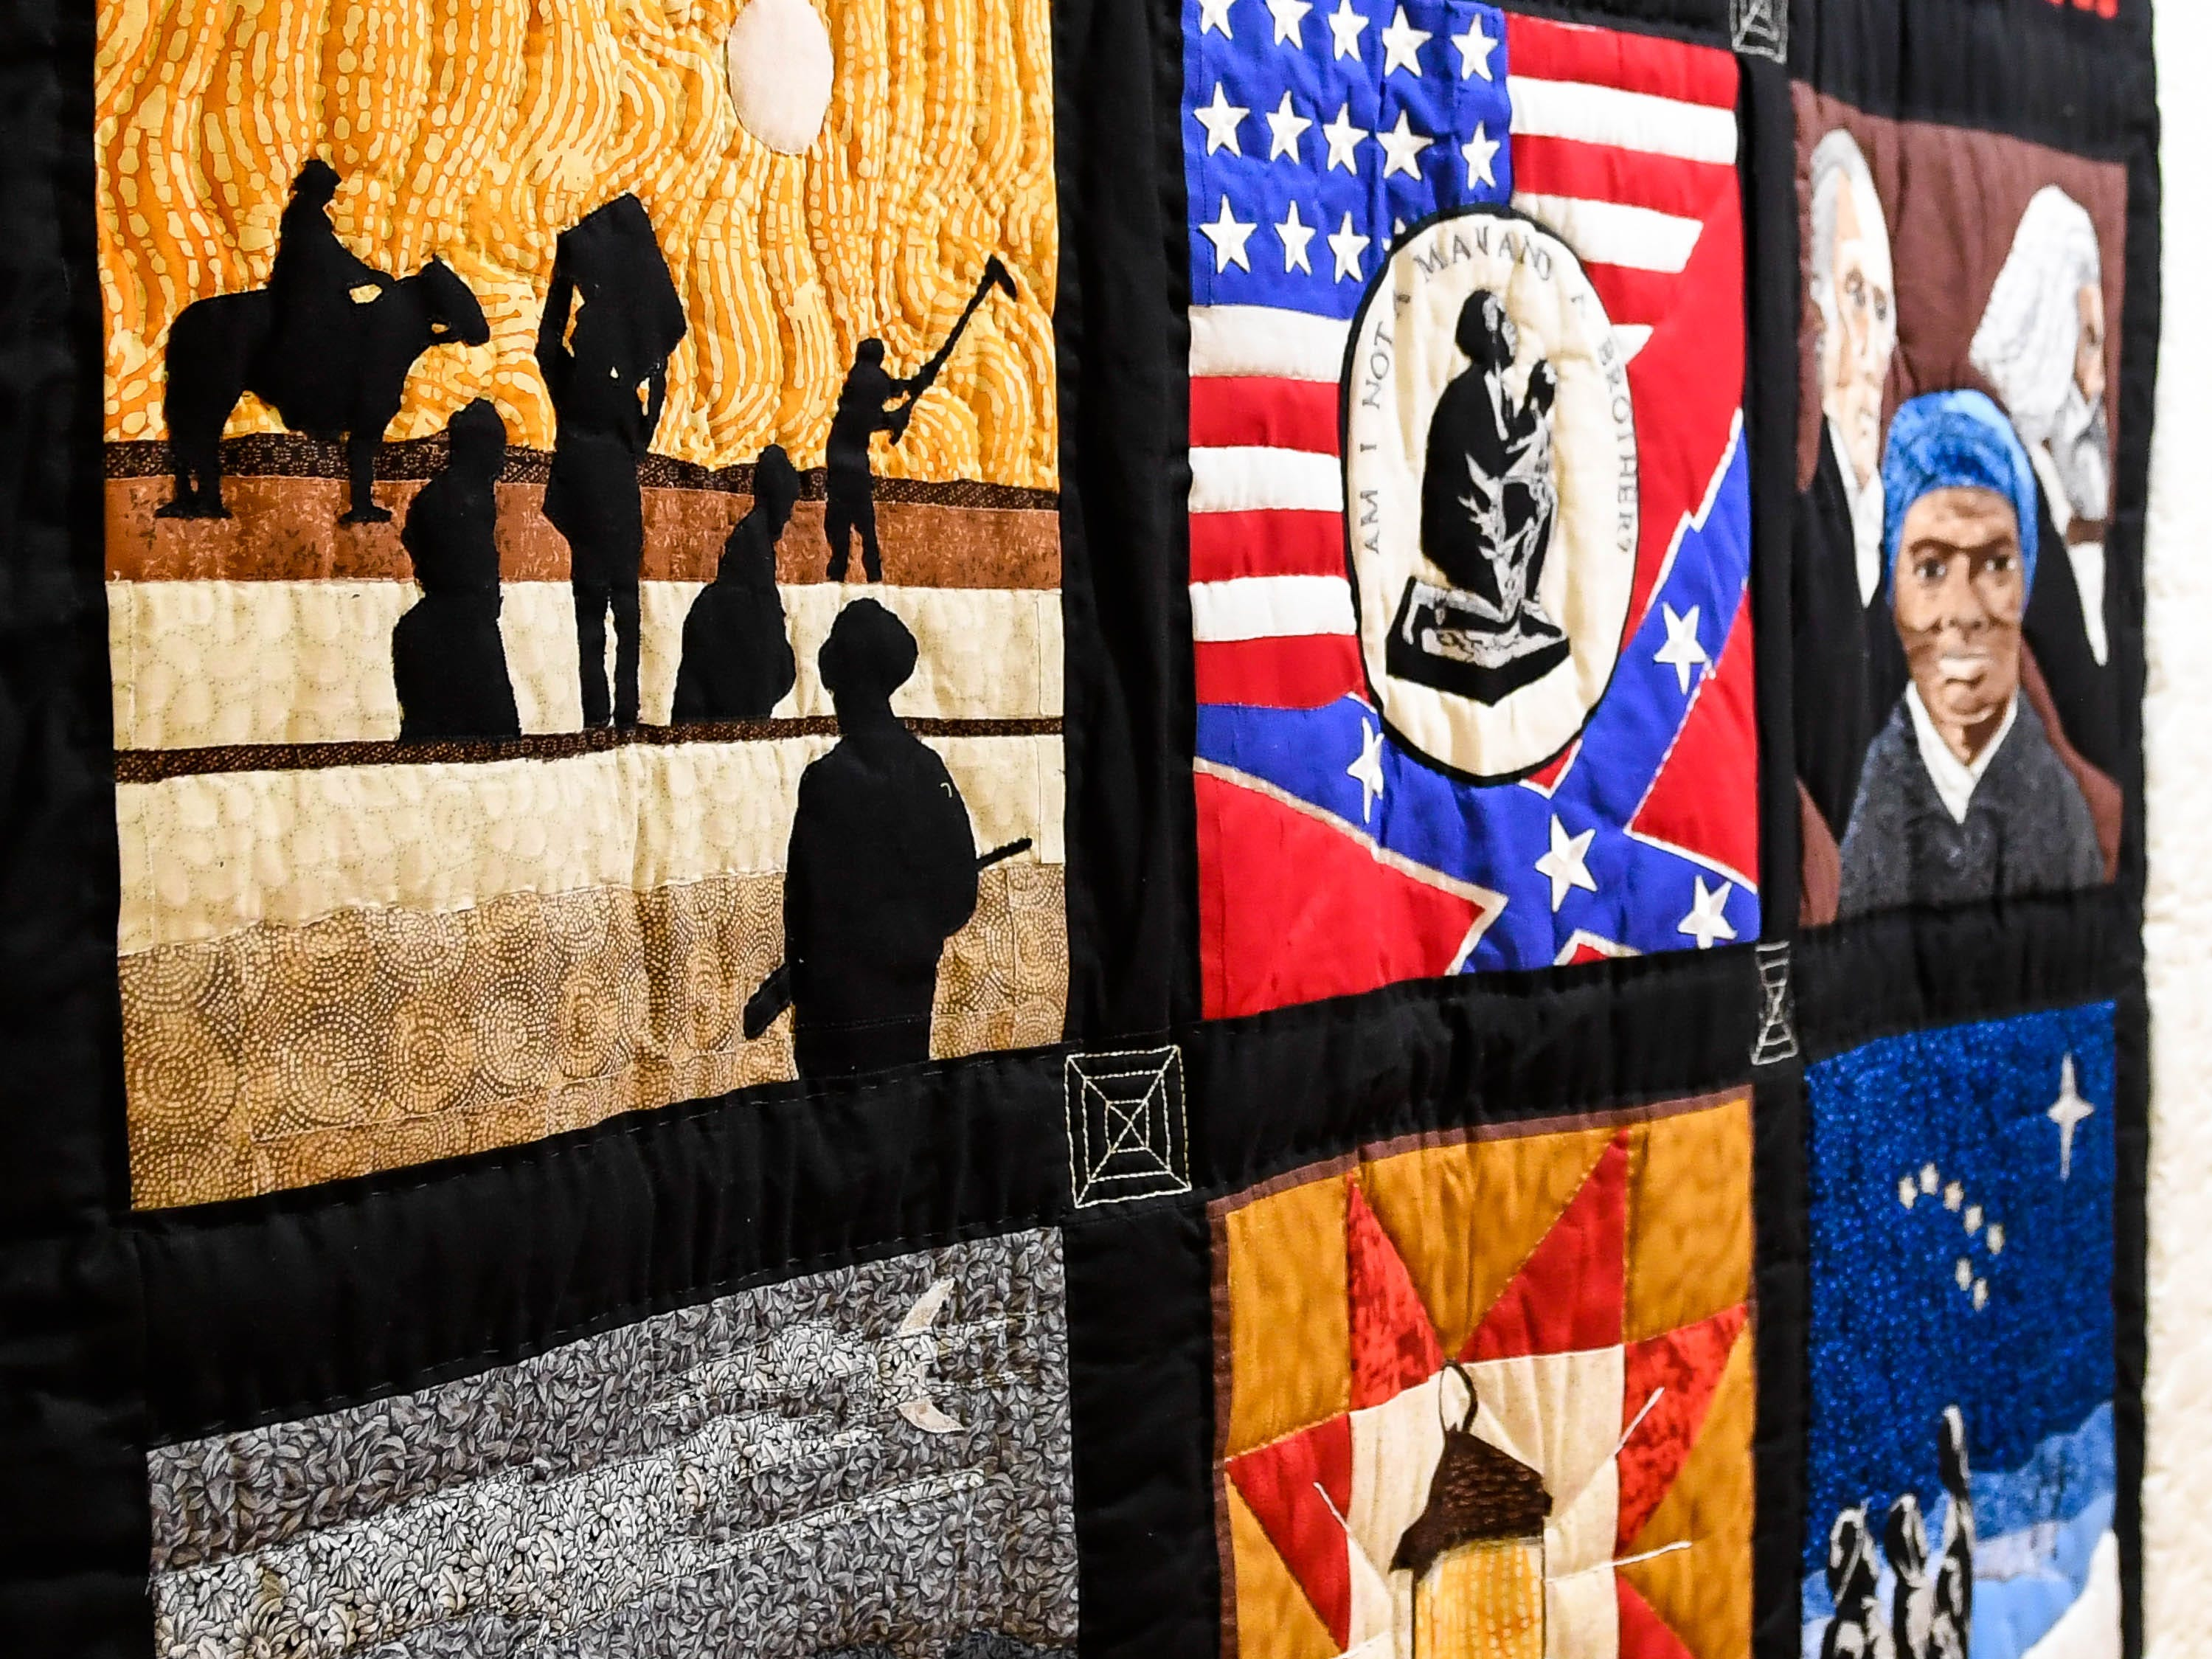 A detail of a quilt on display at the Evansville African American Museum on Friday, February 15, 2019.